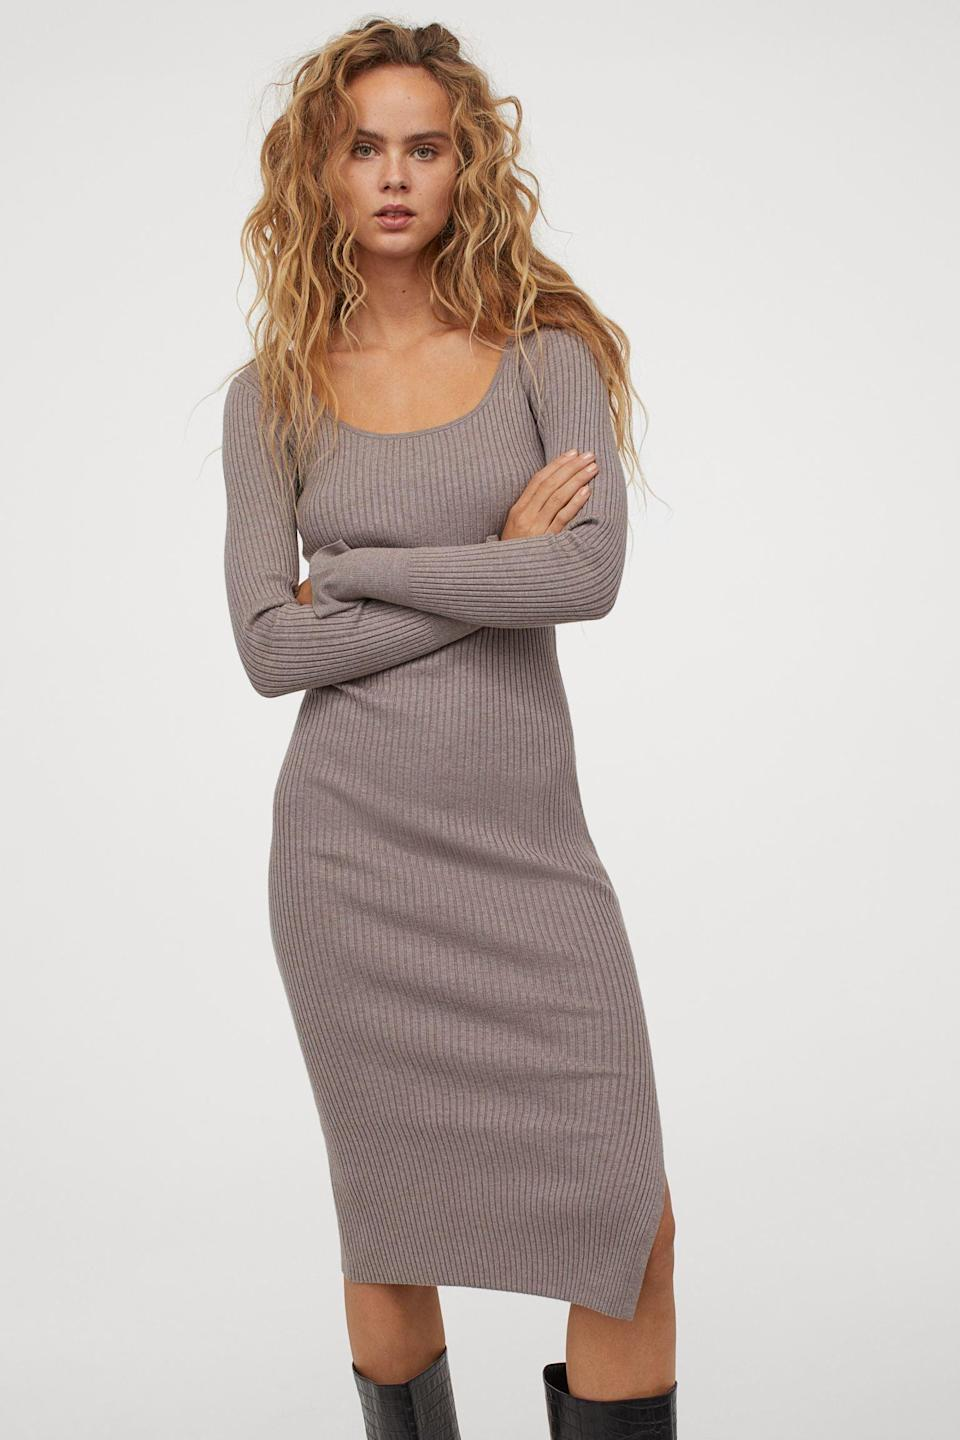 <p>Anyone can appreciate the slouchy yet supportive fit of this <span>Rib-Knit Dress</span> ($30).</p>